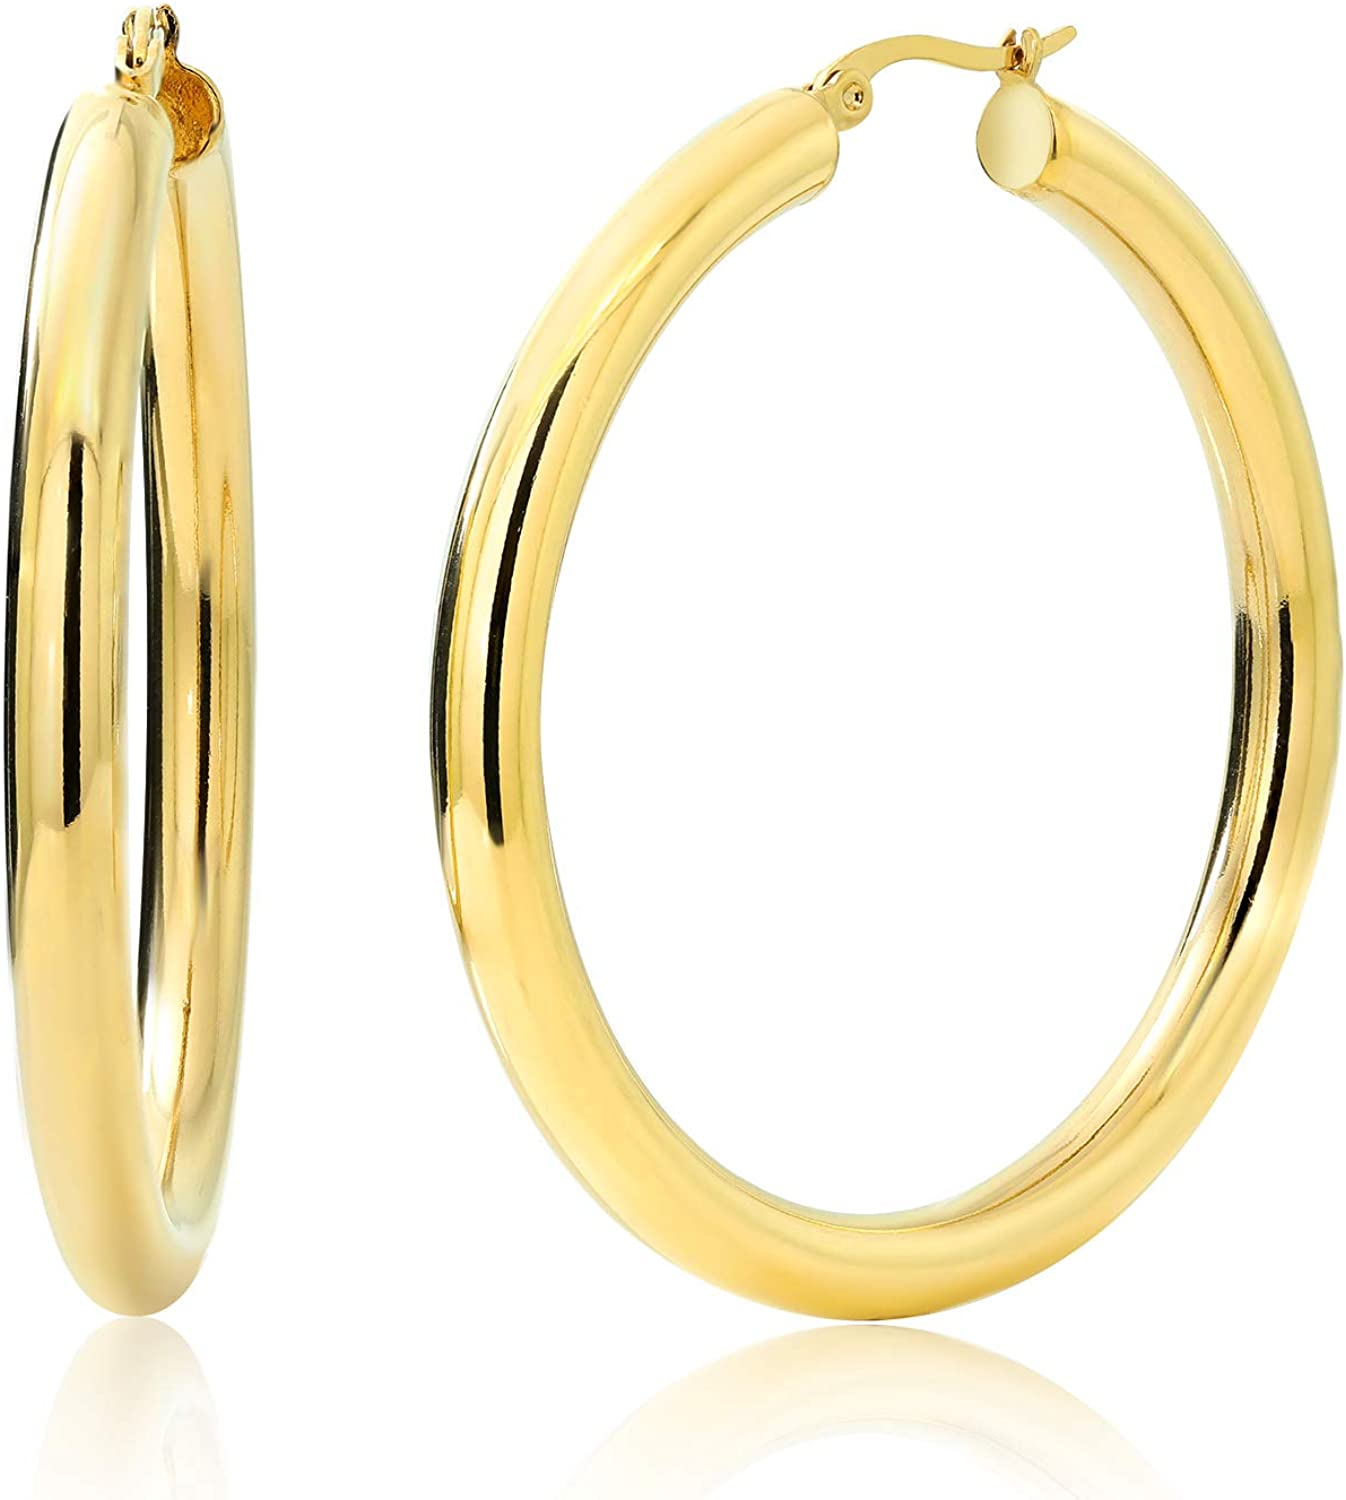 Gem Stone King 2 Inches Year-end gift Wide Steel Earring Yellow Deluxe Hoop Stainless